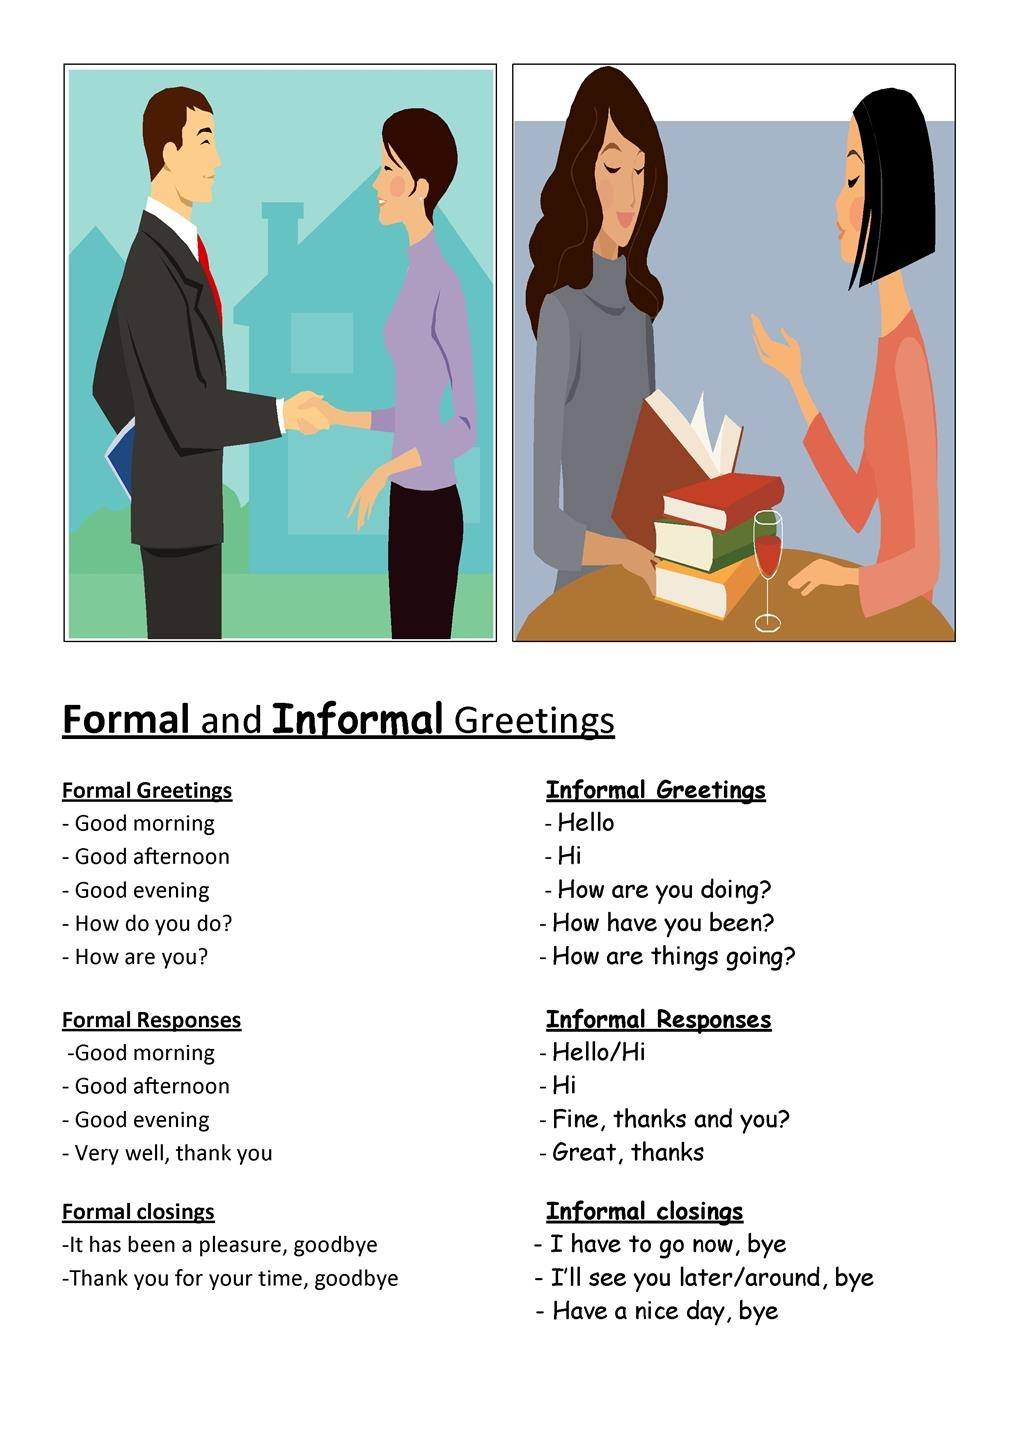 English greeting expressions formal and informal radix tree full20500formalinformalgreetings1 to teach and practice spoken english m4hsunfo Images